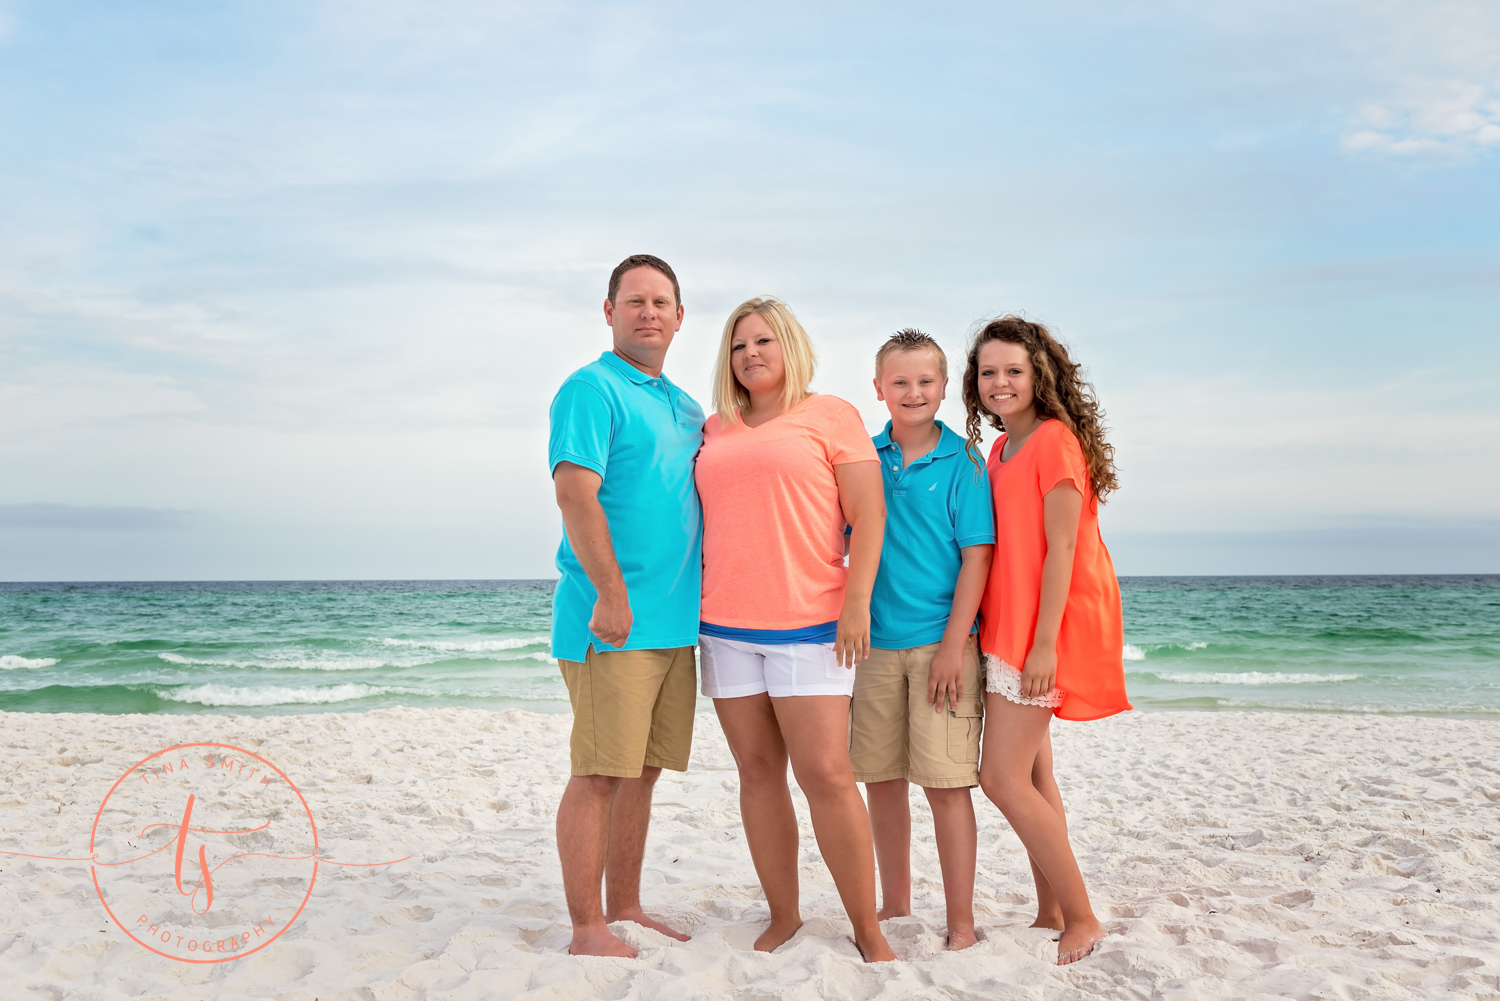 family wearing teal and orange standing on beach for portraits